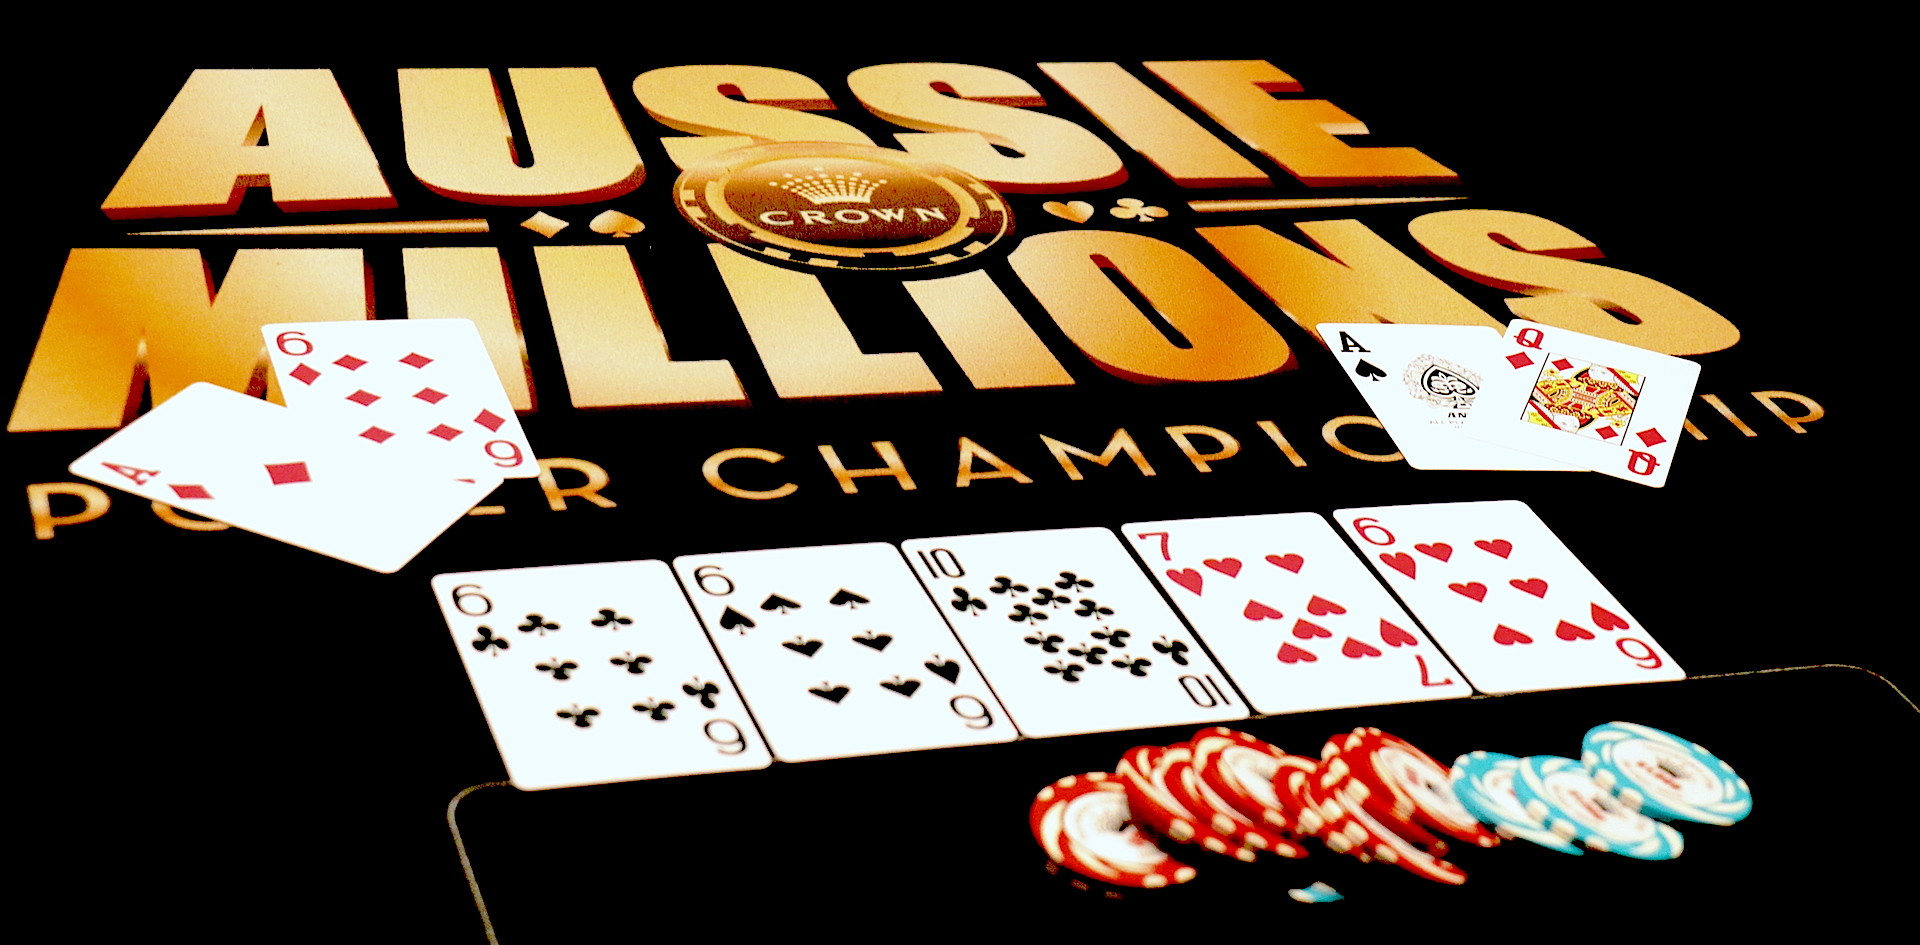 Double up at the Aussie Millions